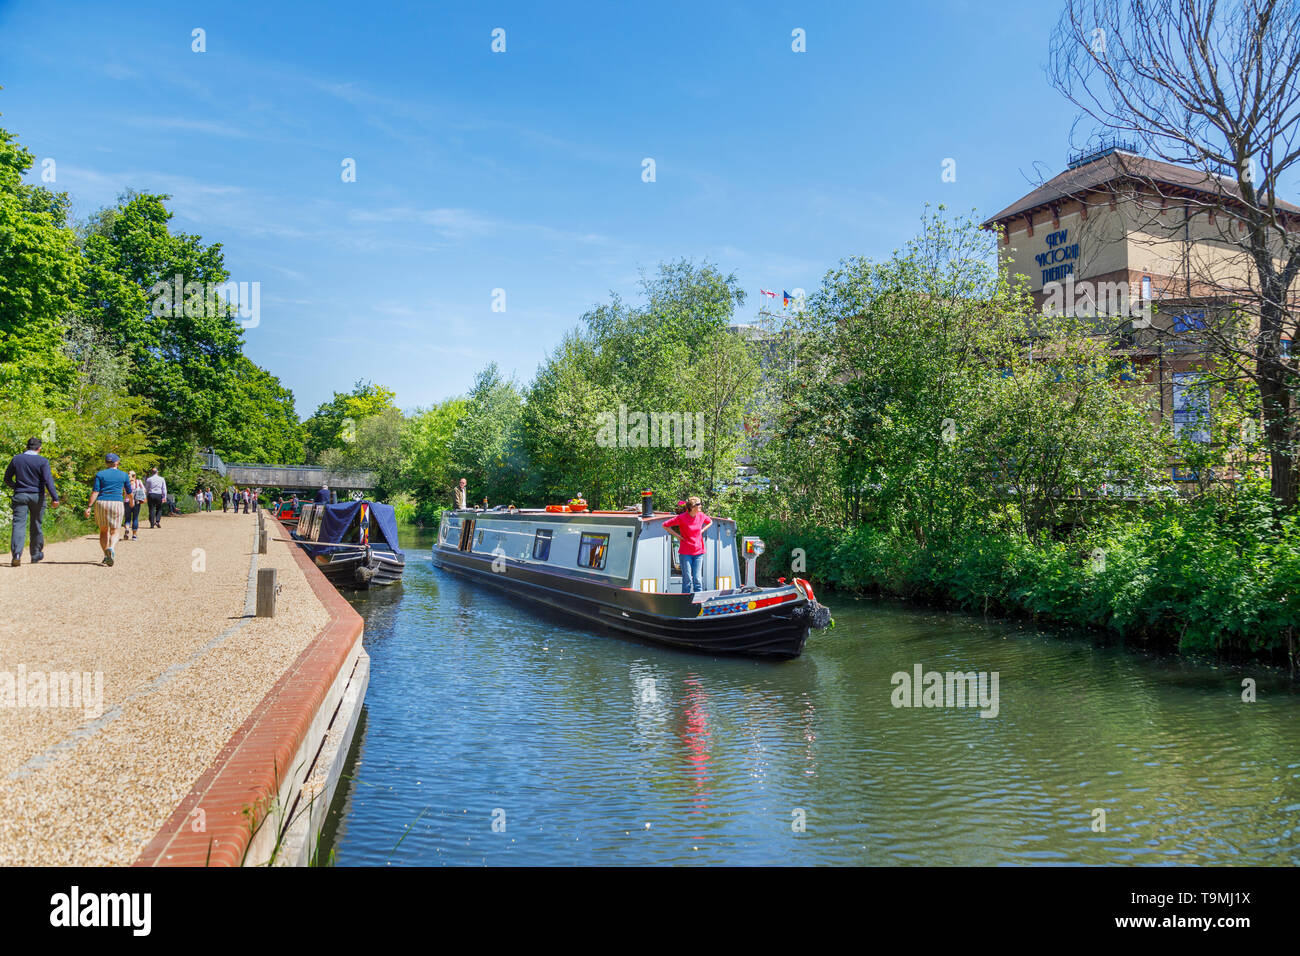 Narrowboat on the Basingstoke Canal passing through Woking town centre near the New Victoria Theatre, Surrey, southeast England on a sunny day - Stock Image